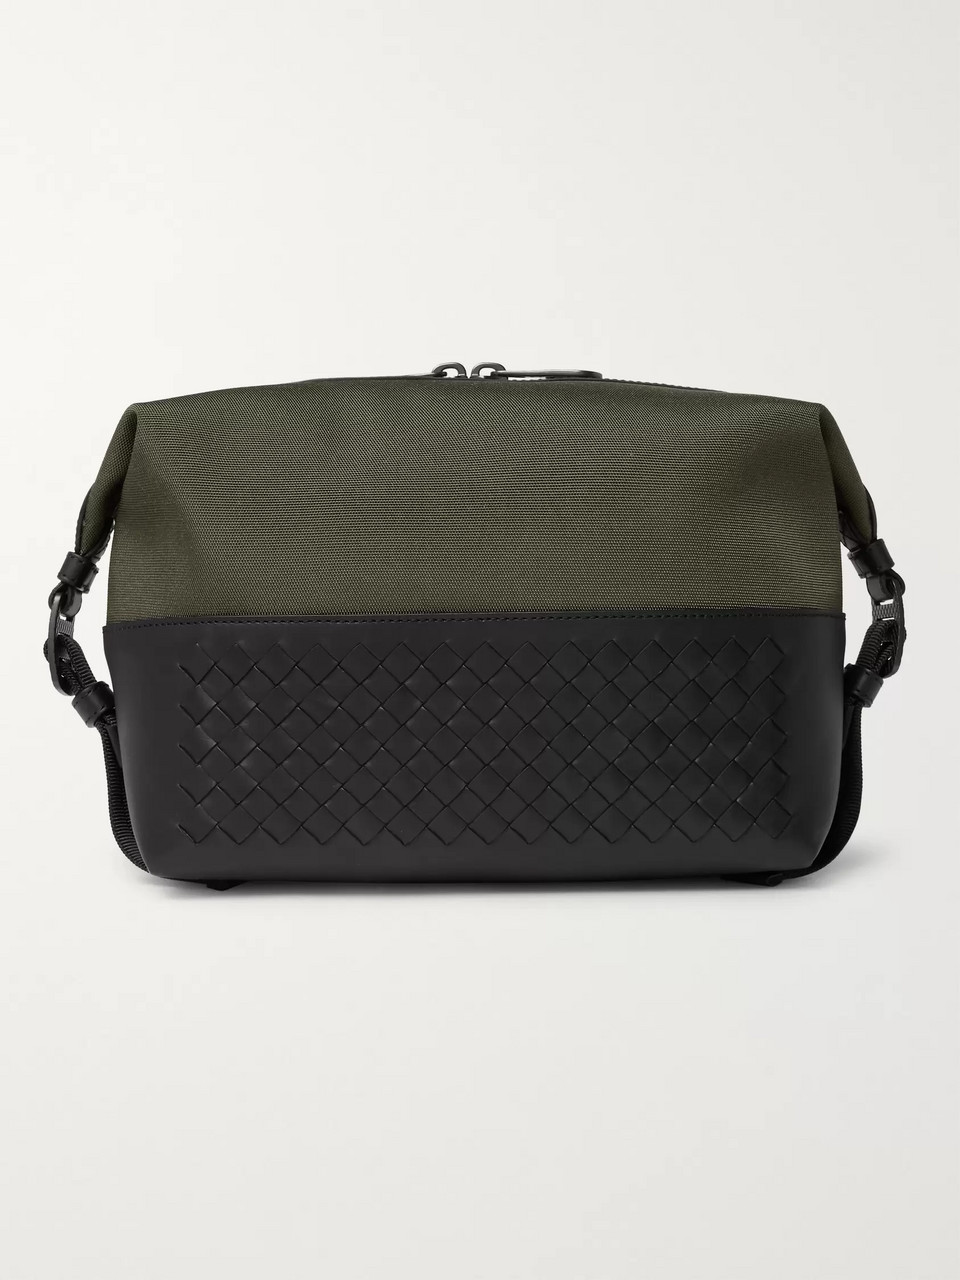 Bottega Veneta Canvas and Intrecciato Leather Wash Bag